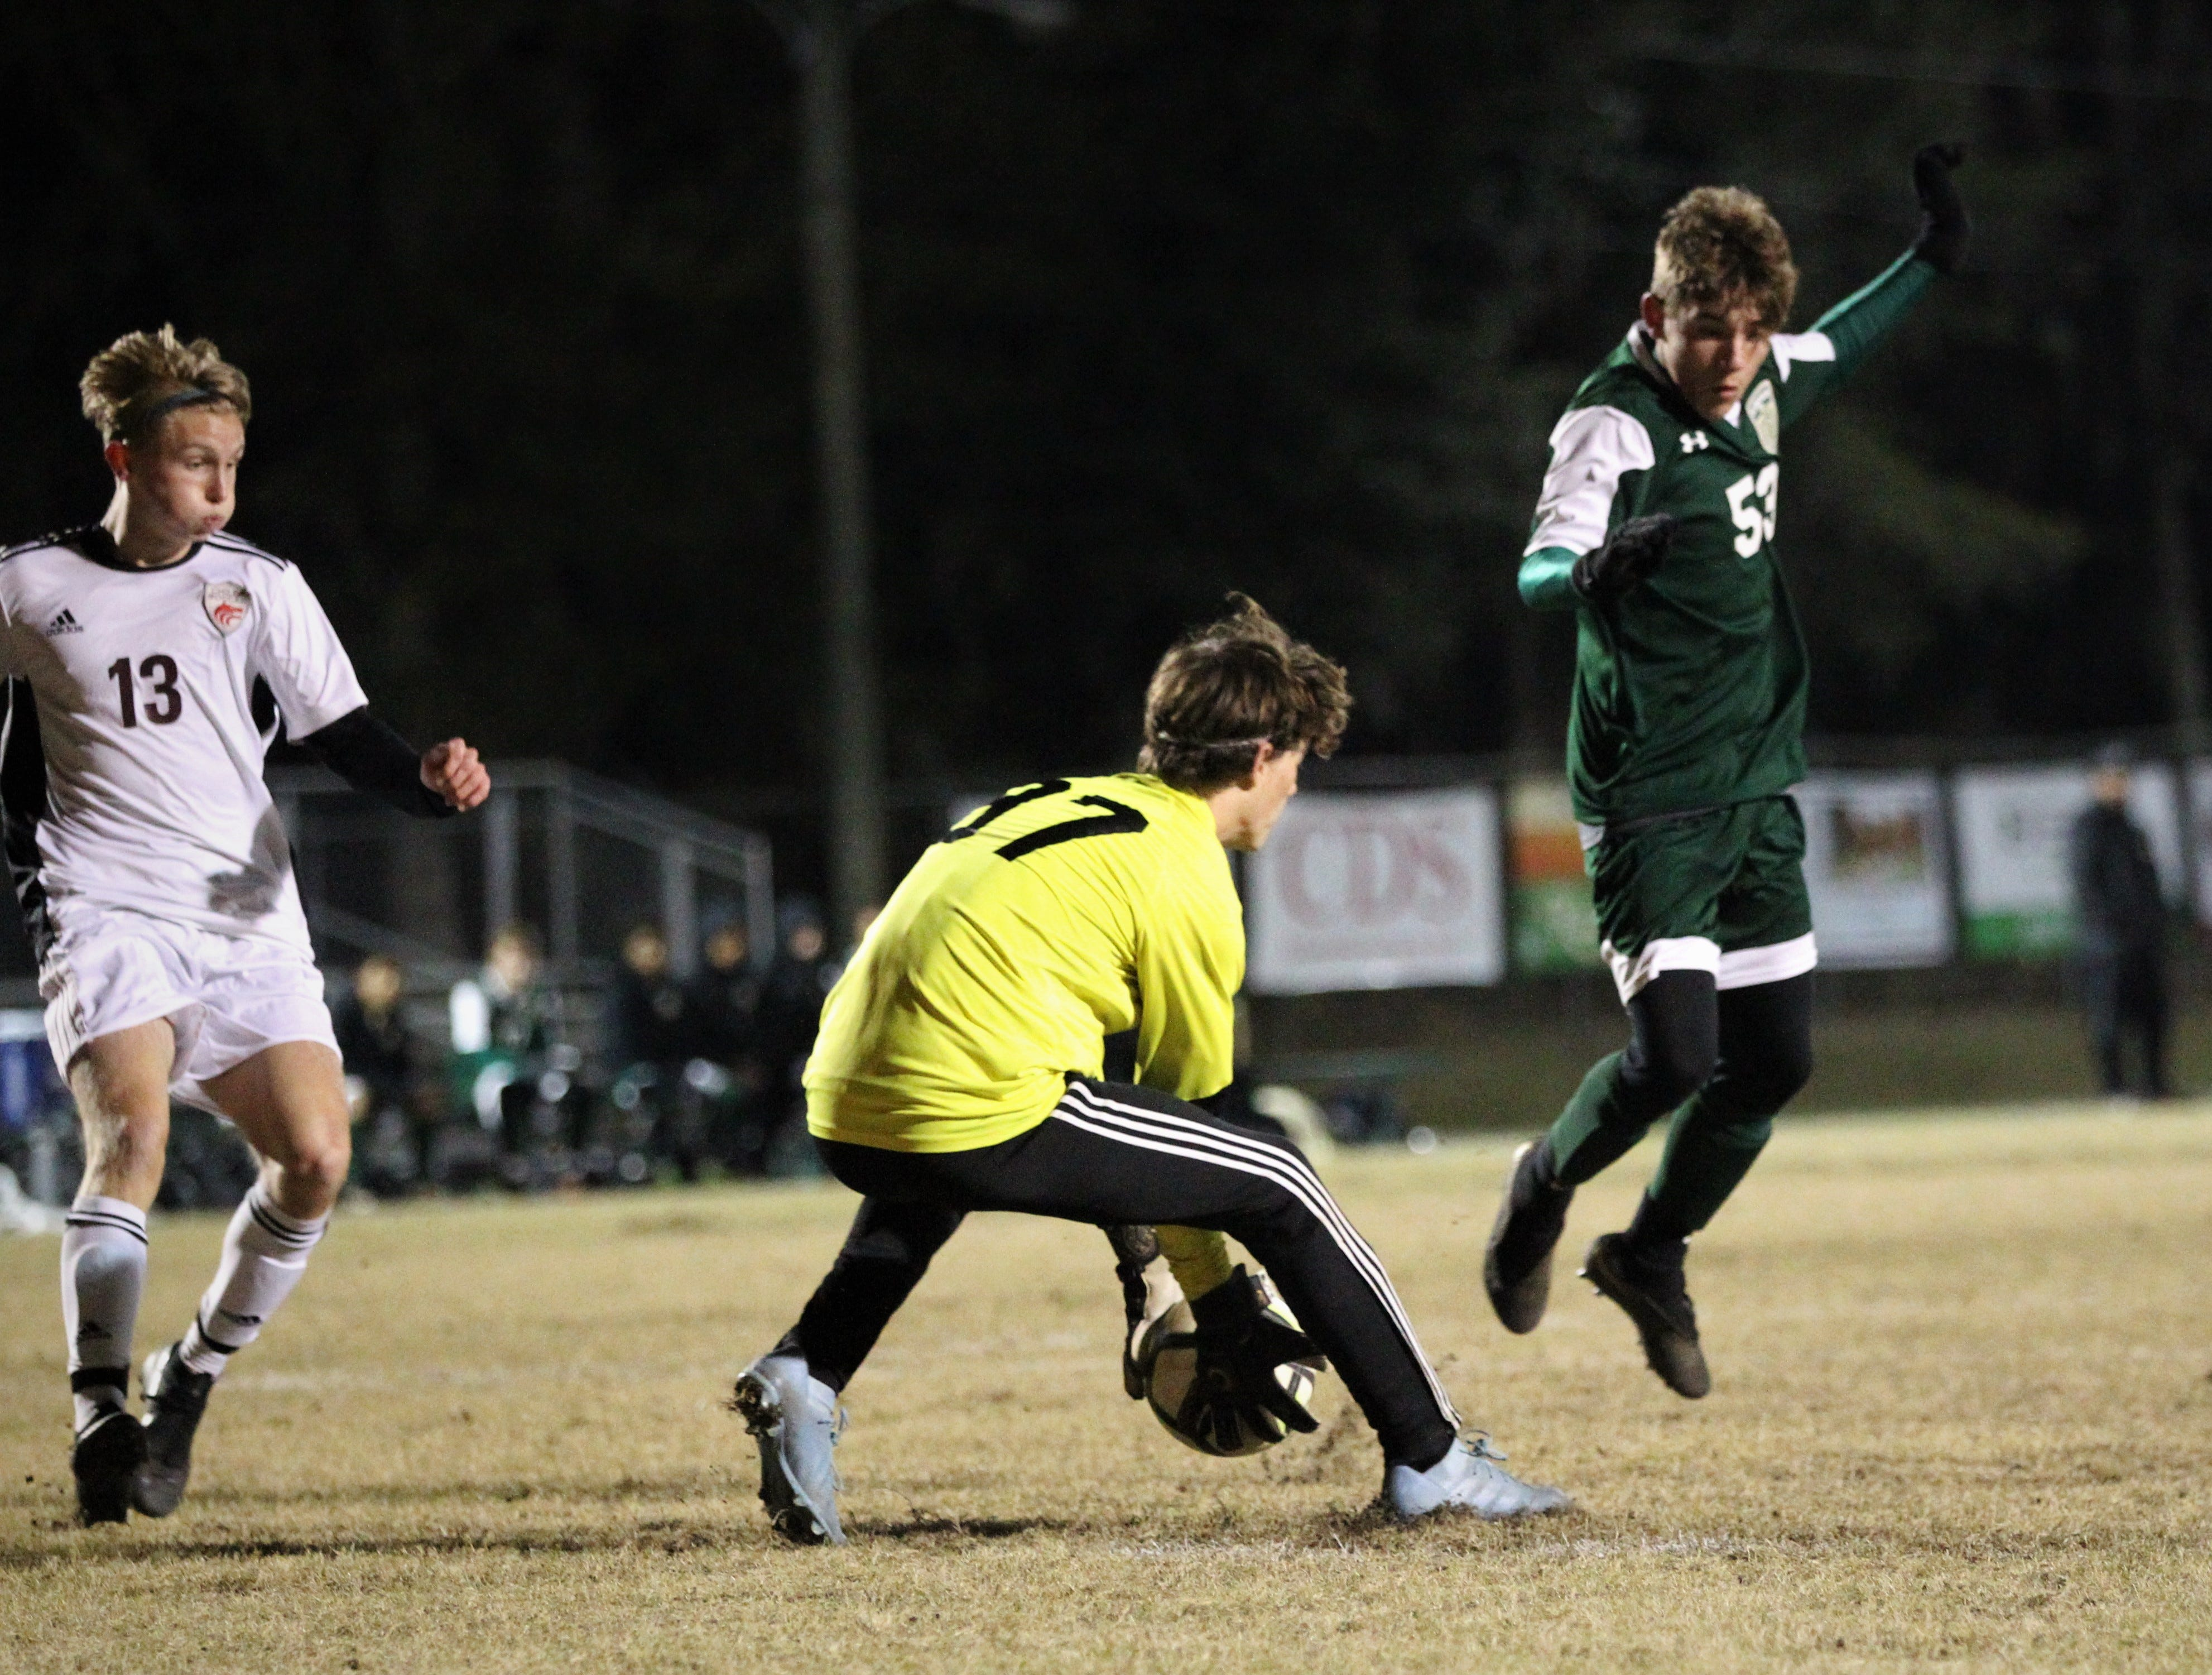 Lincoln keeper Aiden Reiding grabs a through ball as Chiles' boys soccer team beat Lincoln 1-0 in a District 2-4A semifinal on Jan. 30, 2019.